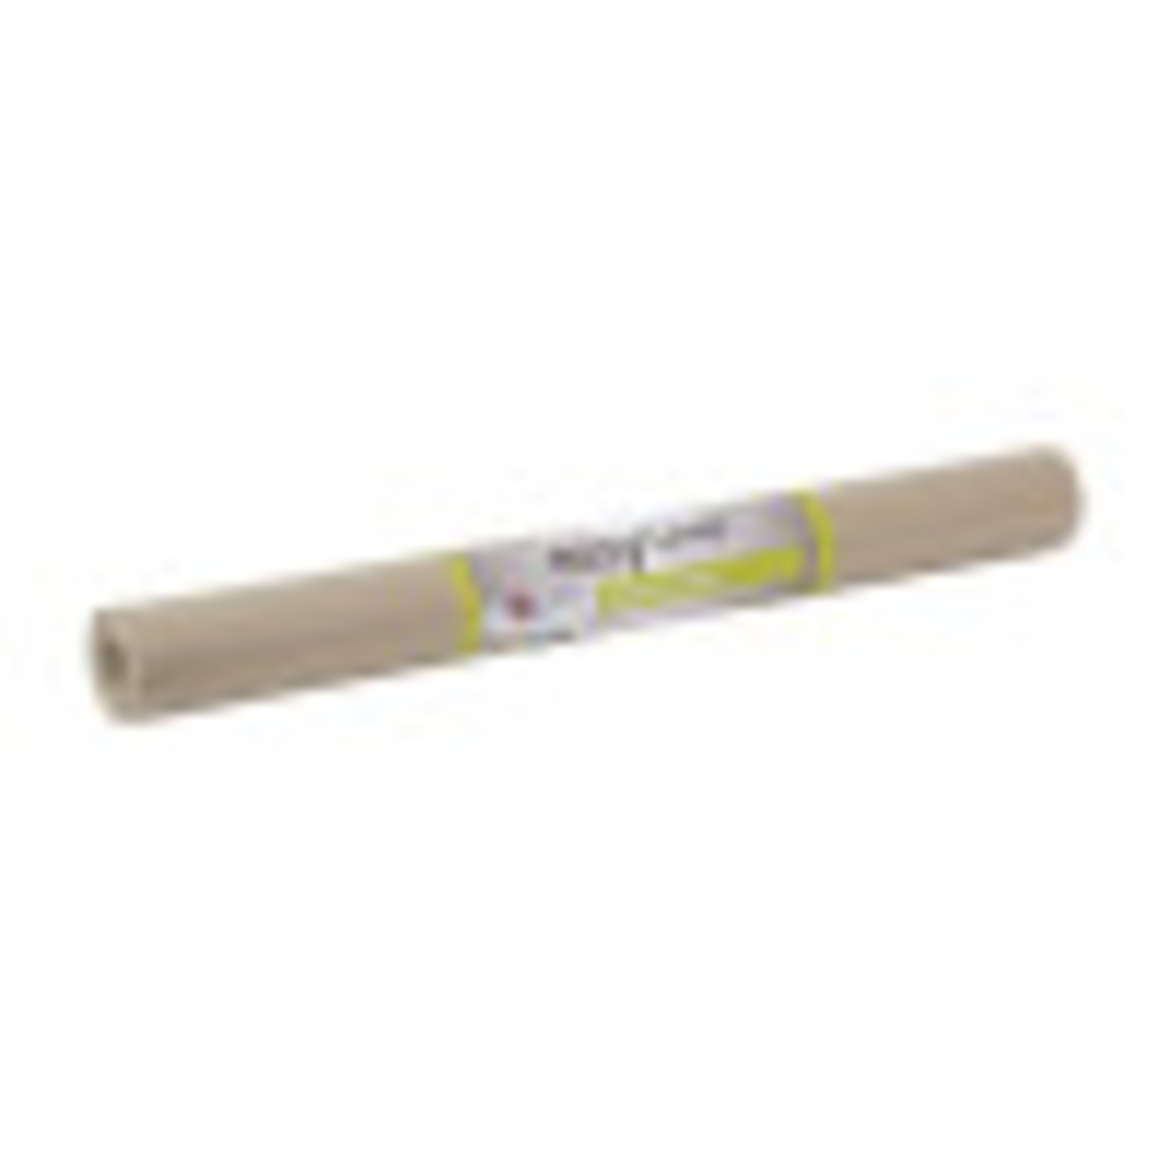 Solid Grip Easy Liner® Brand Shelf Liner - Taupe, 20 in. x 4 ft. Image